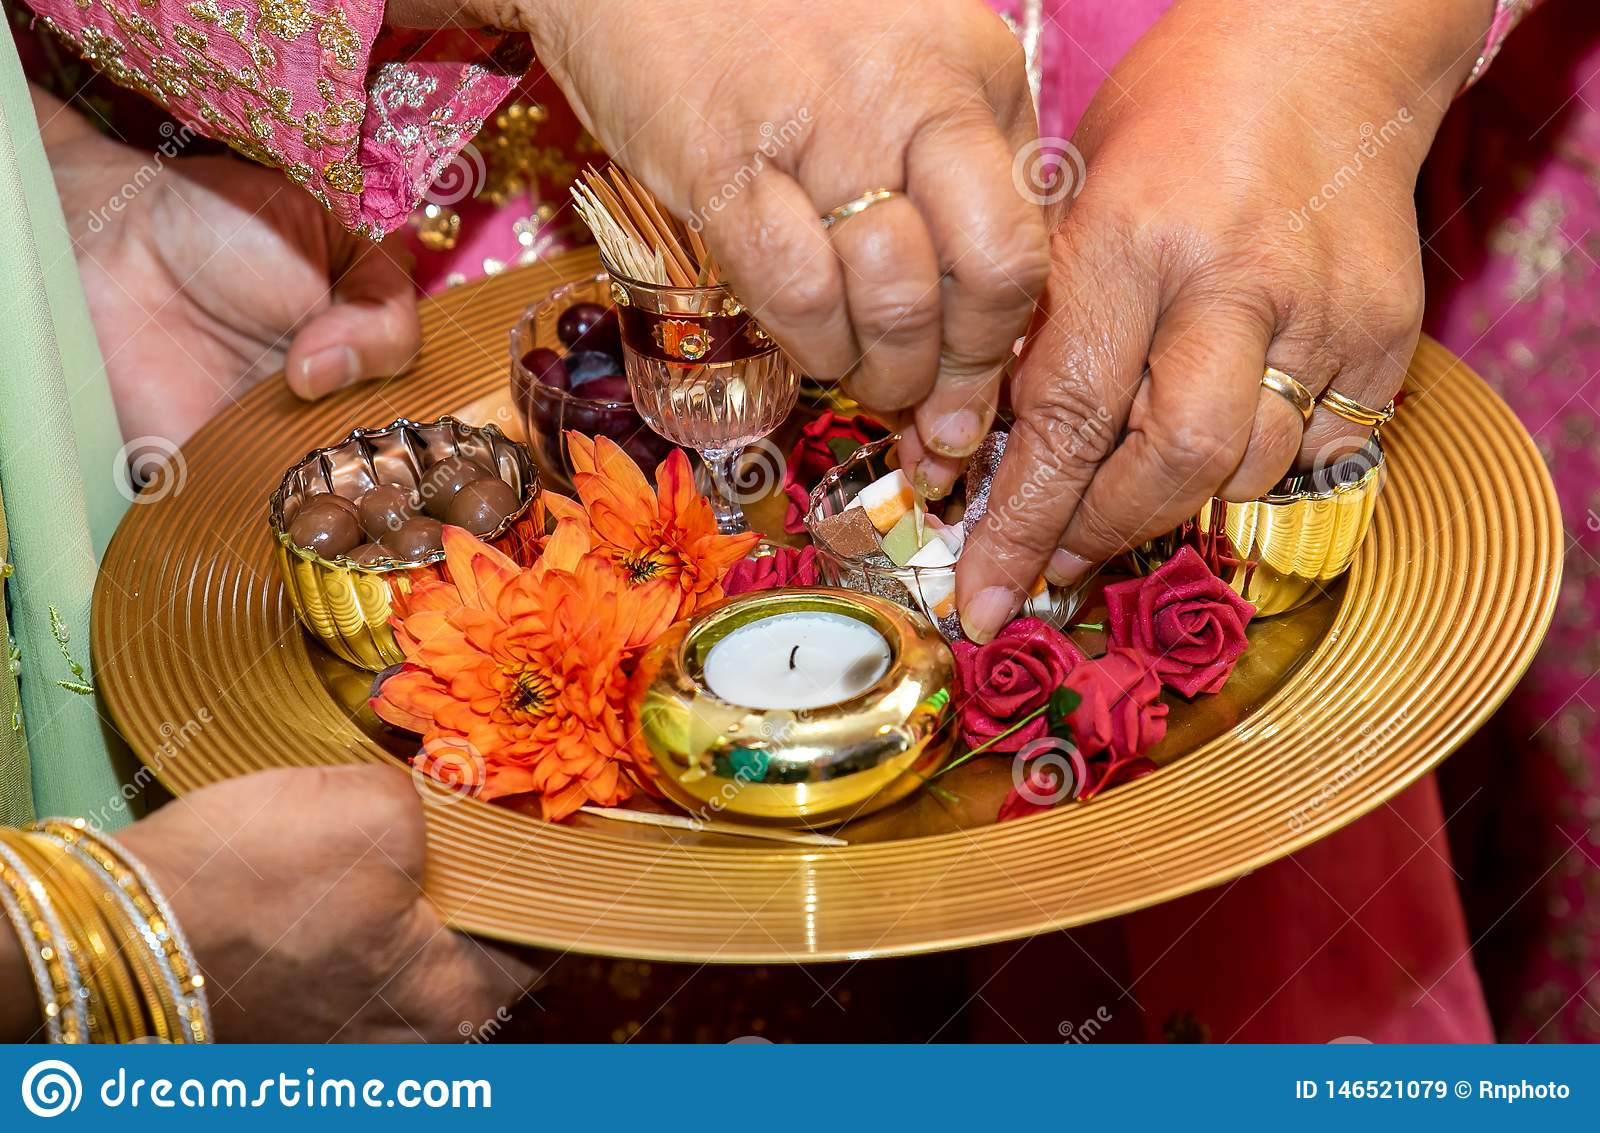 Hands and candles for mendhi henna wedding